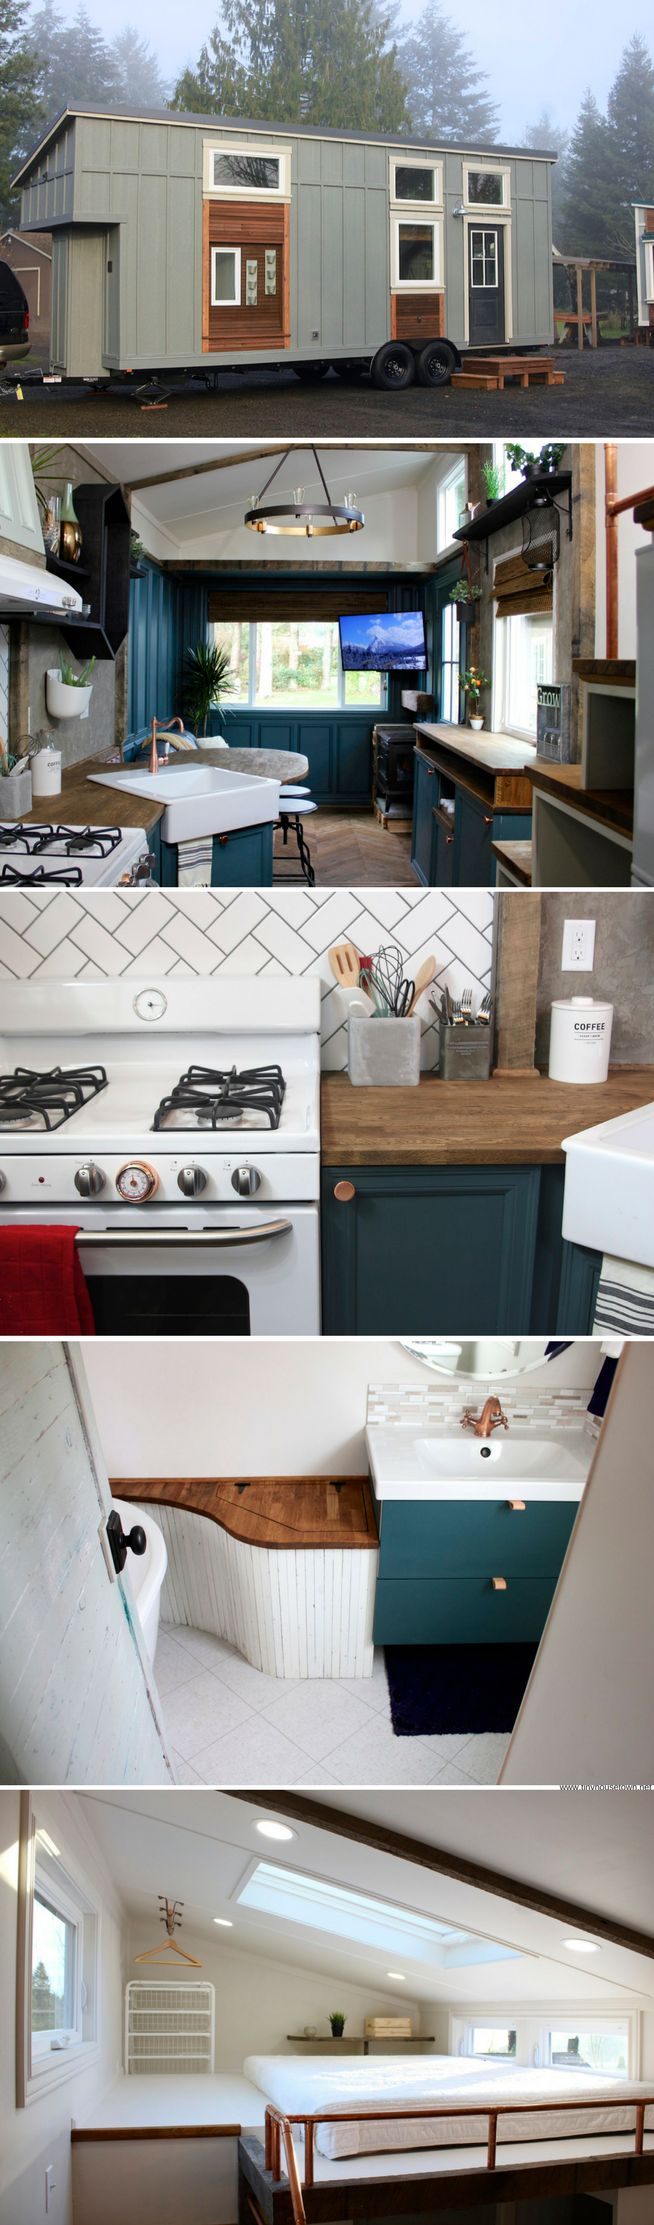 best images about tiny kitchen on pinterest tiny homes on